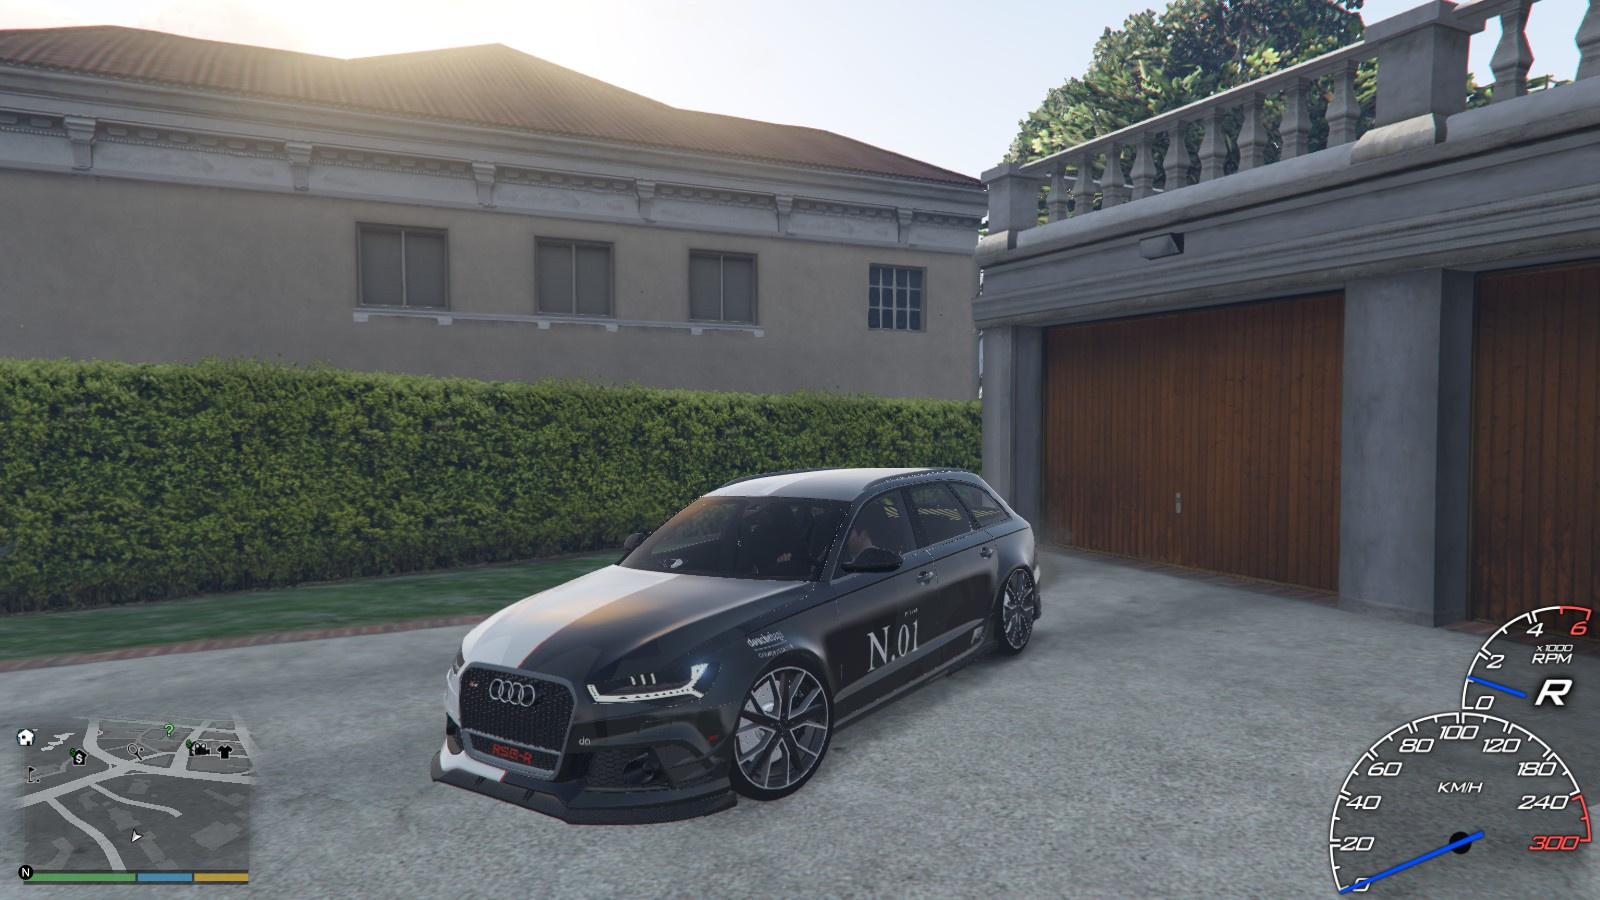 jon olsson 39 s no 1 i audi rs6 avant abt livery gta5. Black Bedroom Furniture Sets. Home Design Ideas